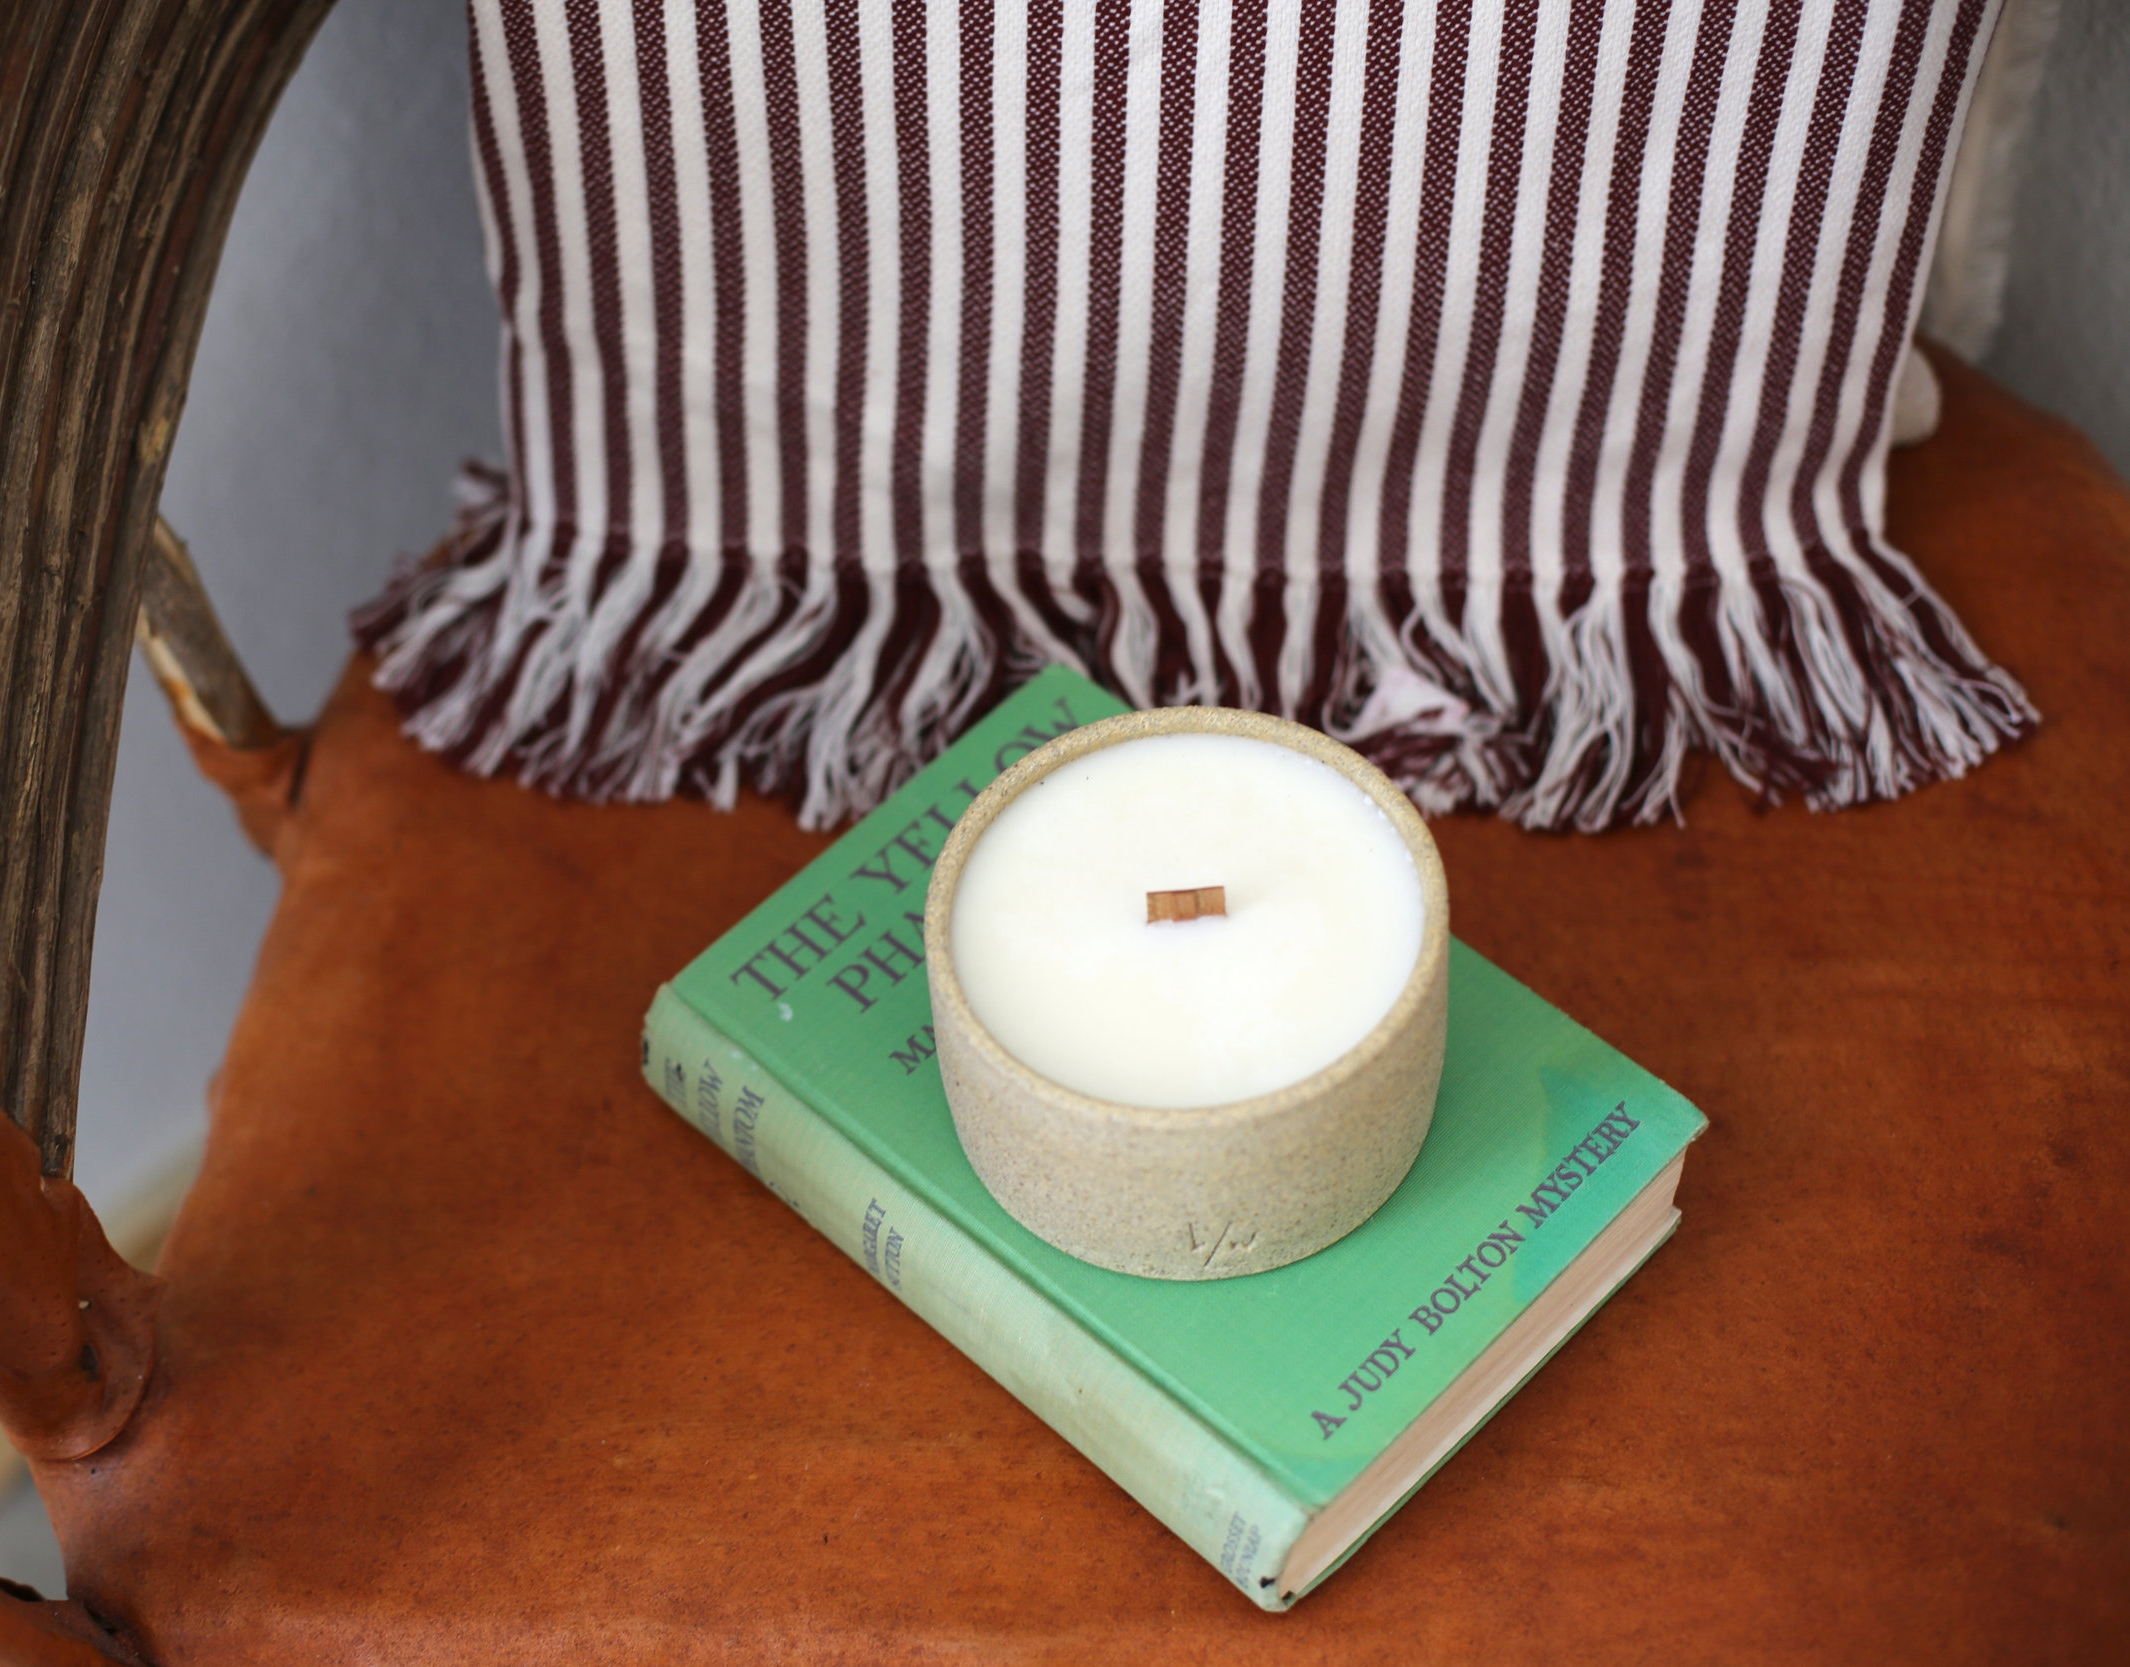 Candle And Green Book In Corner Chair 4.jpg